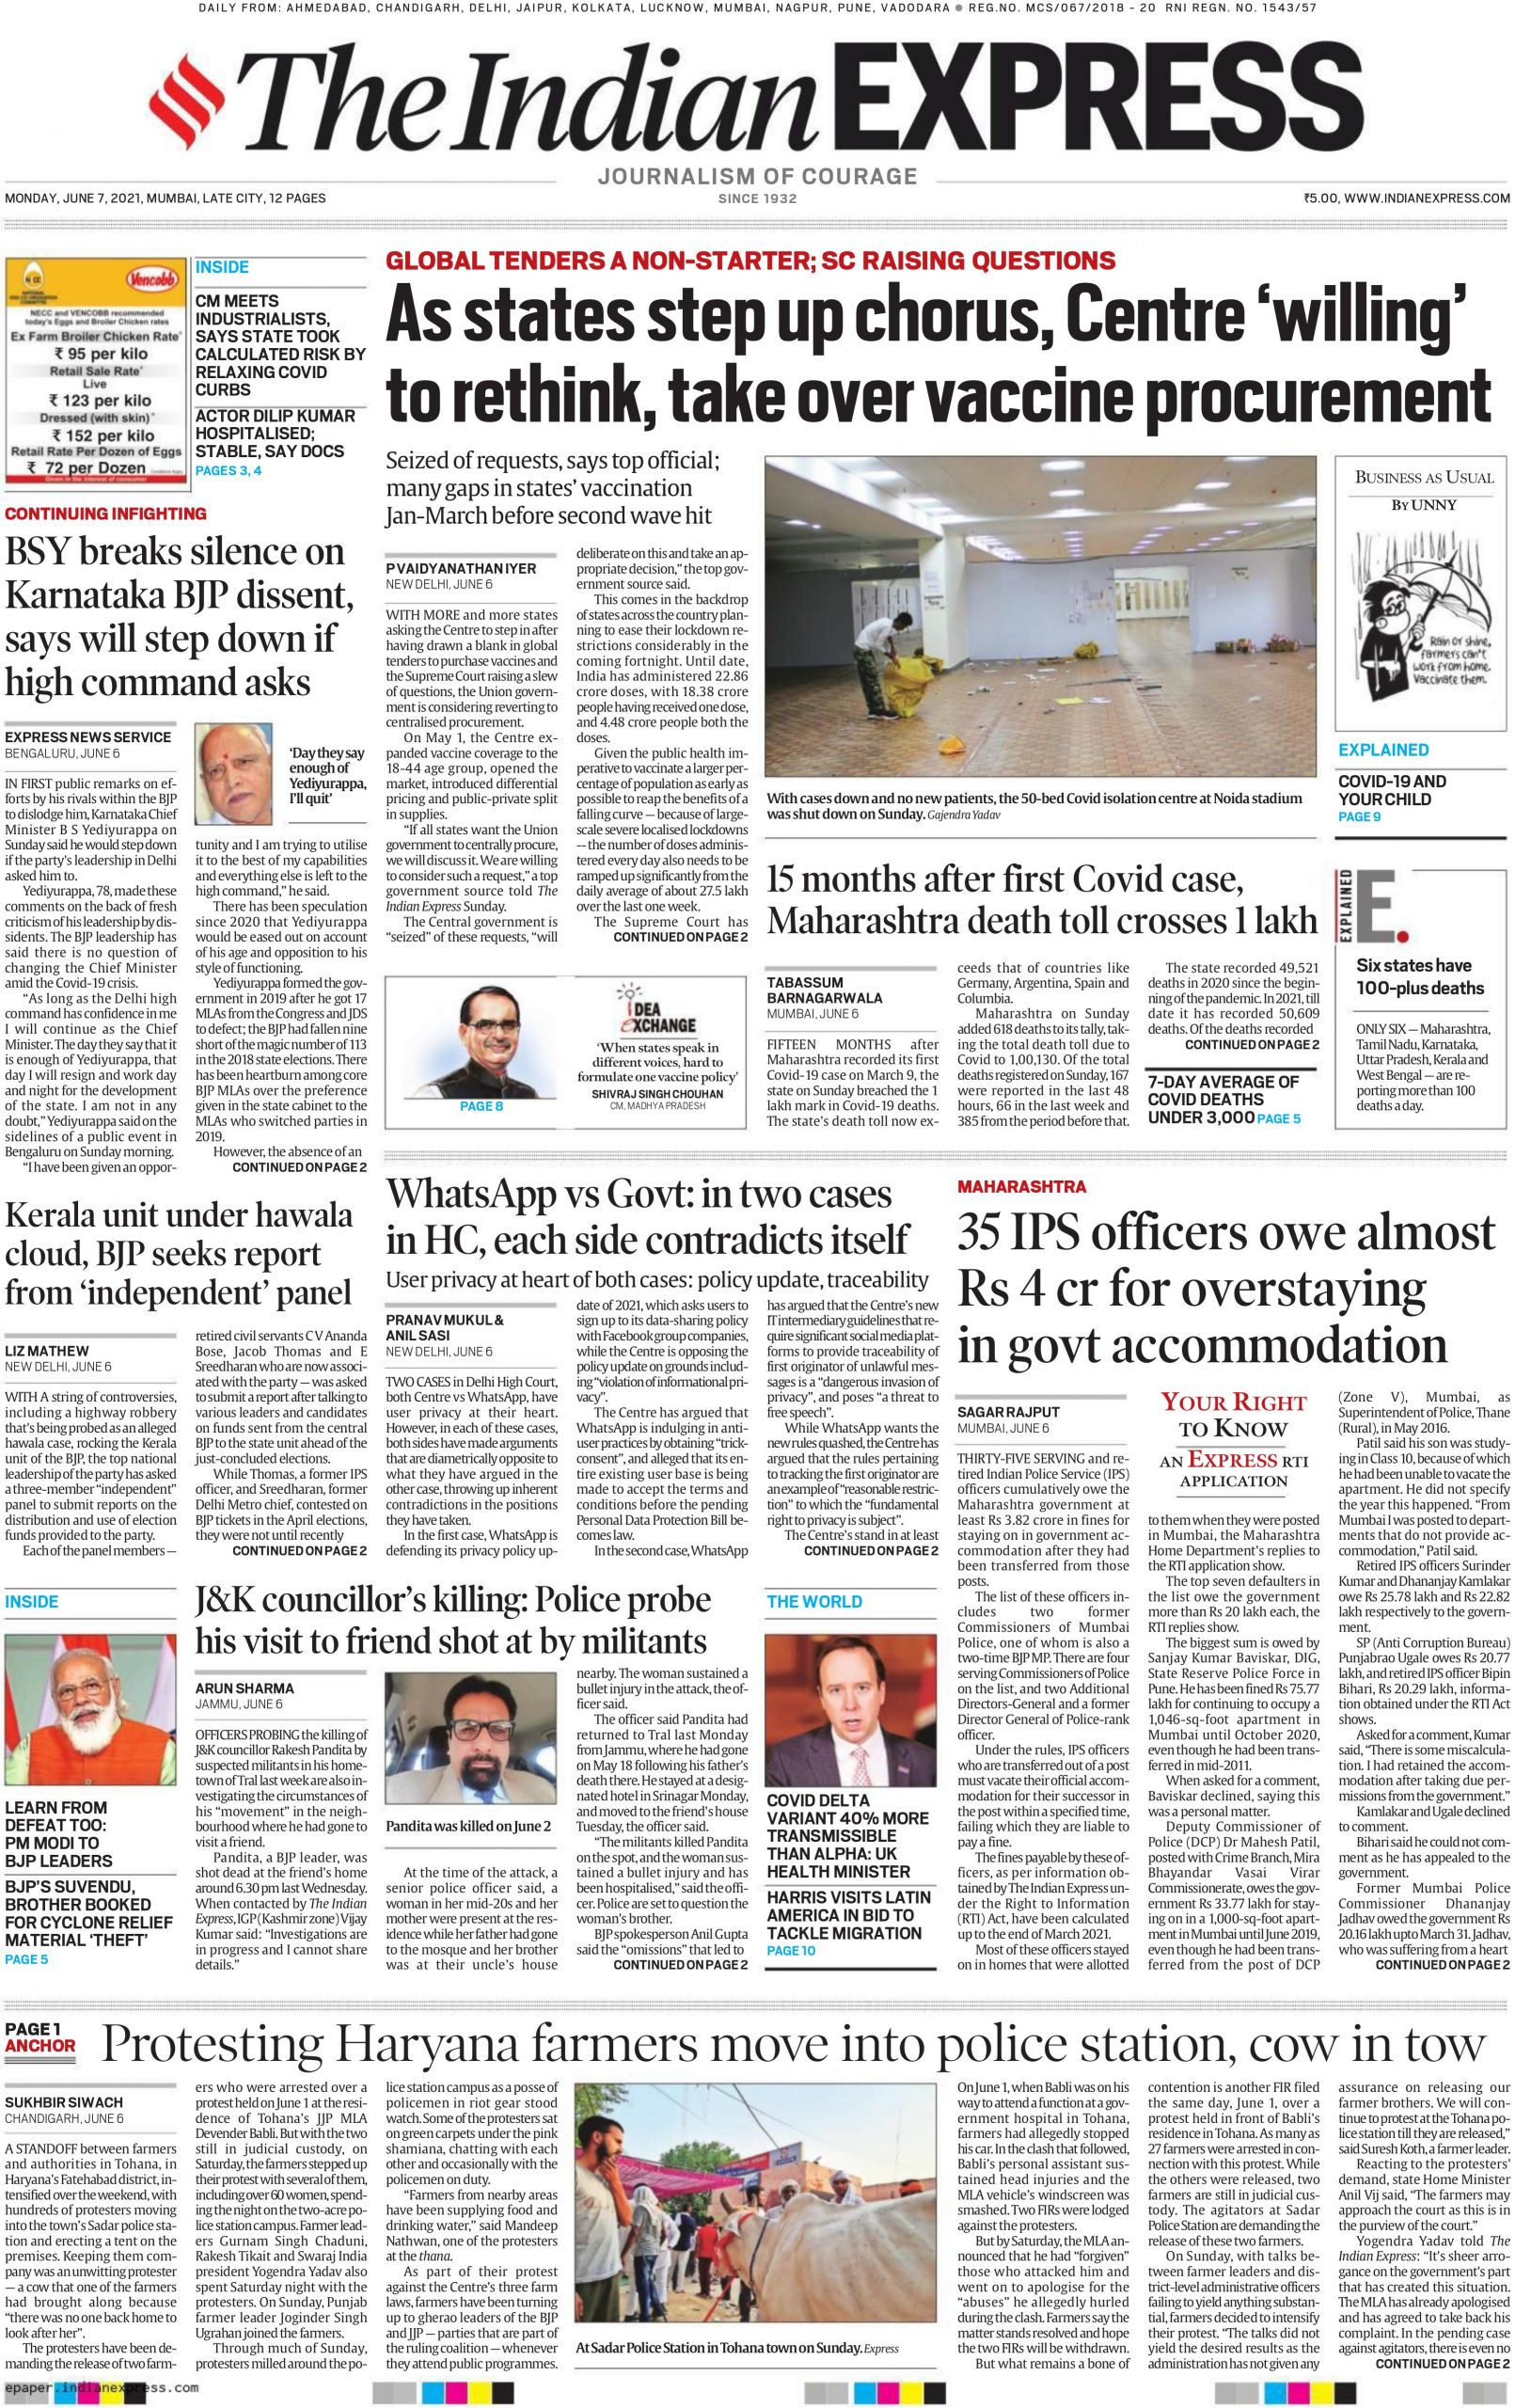 The Indian Express 7th June 2021